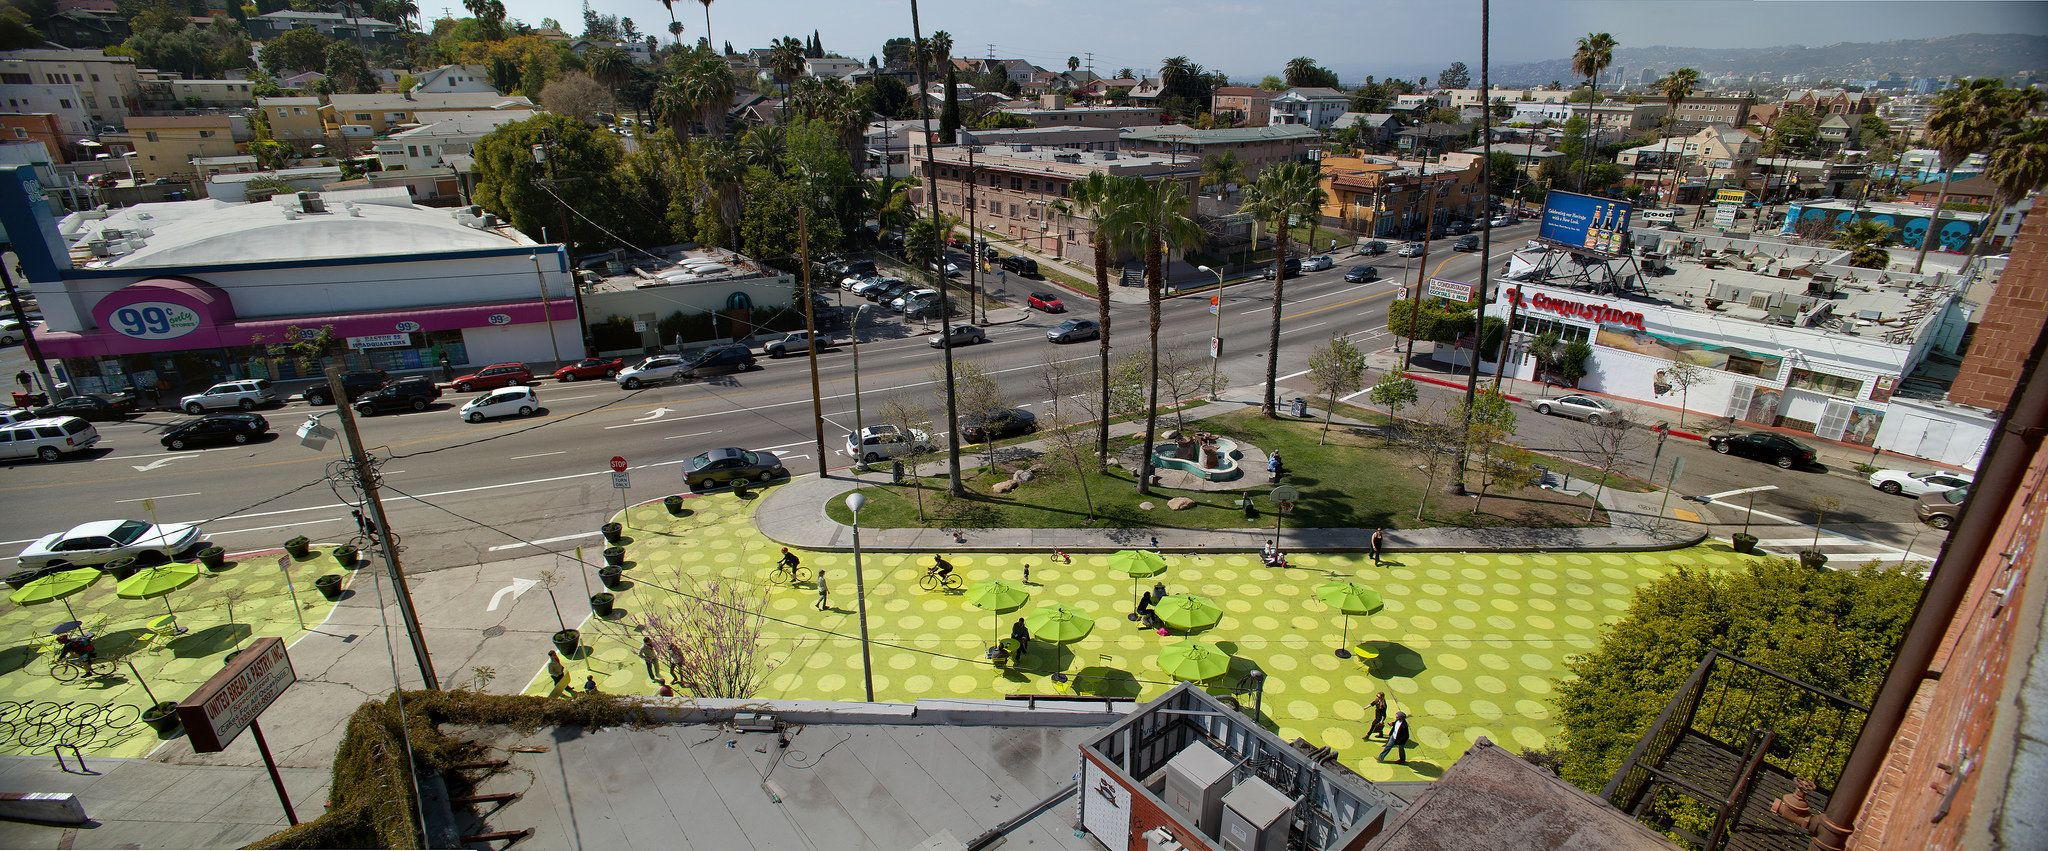 People St. is a Los Angeles projectthat turns underused parts of streets into public spaces.